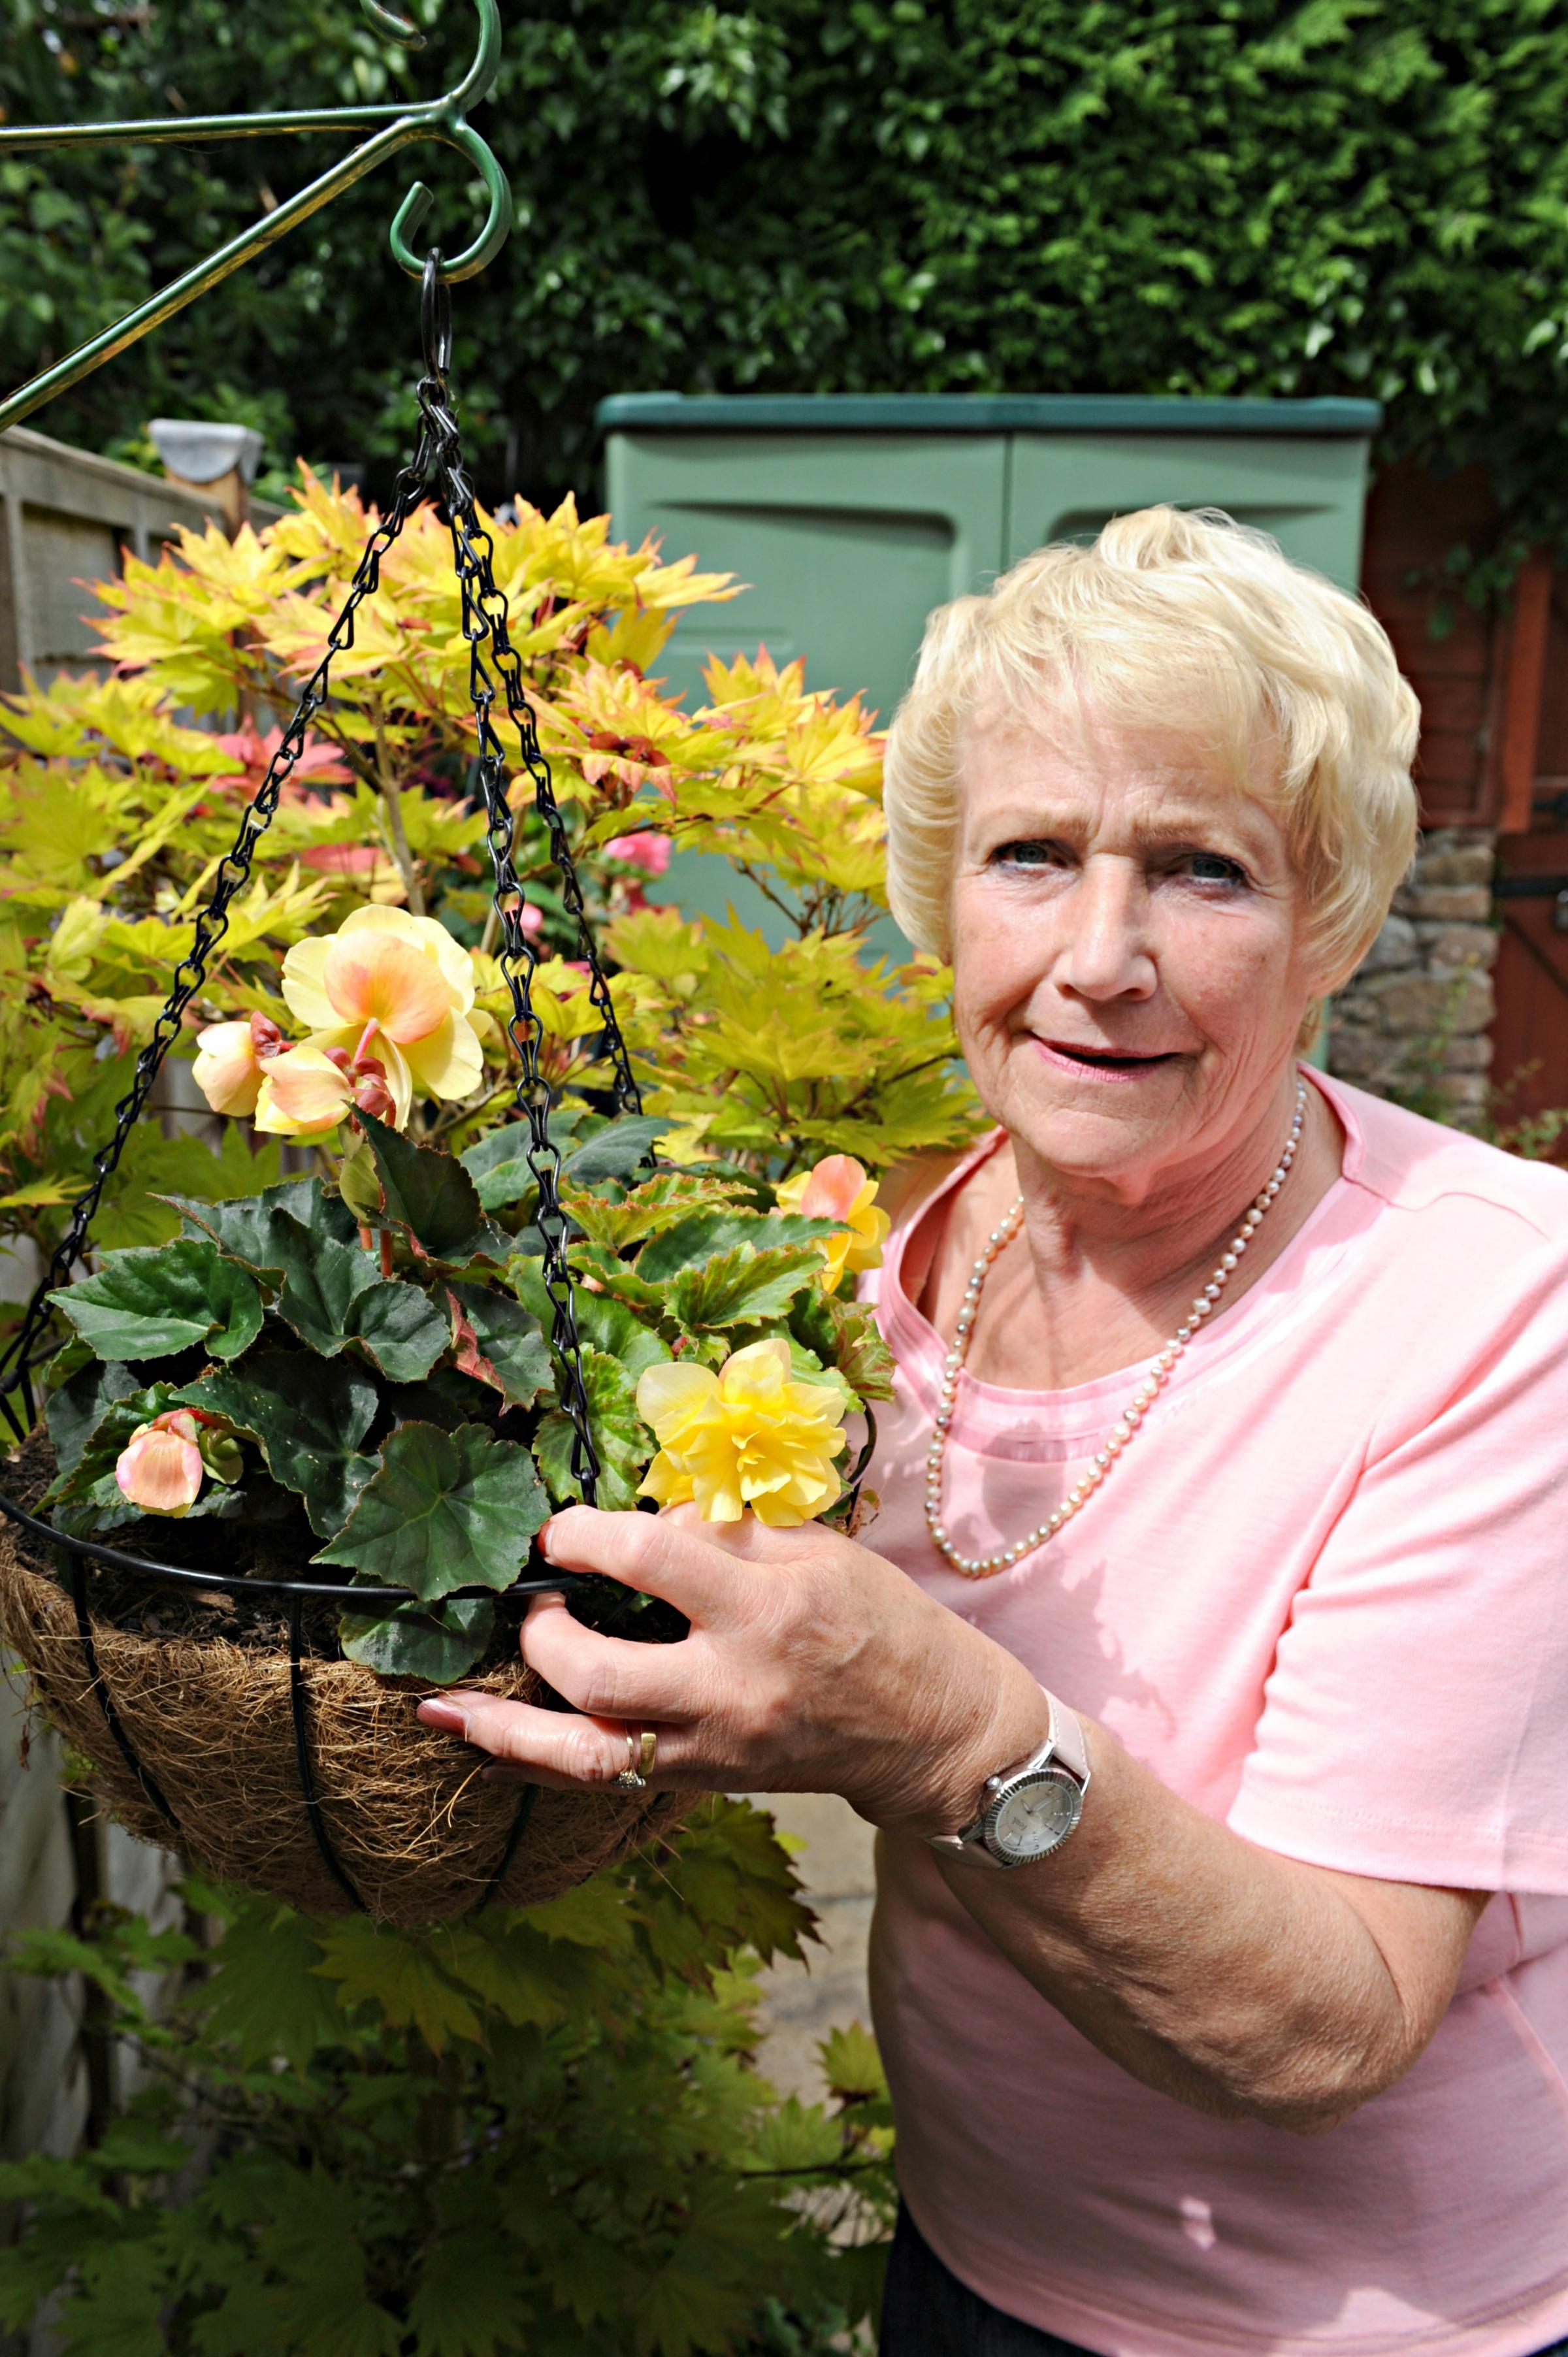 Thornbury hanging basket reunited with owners